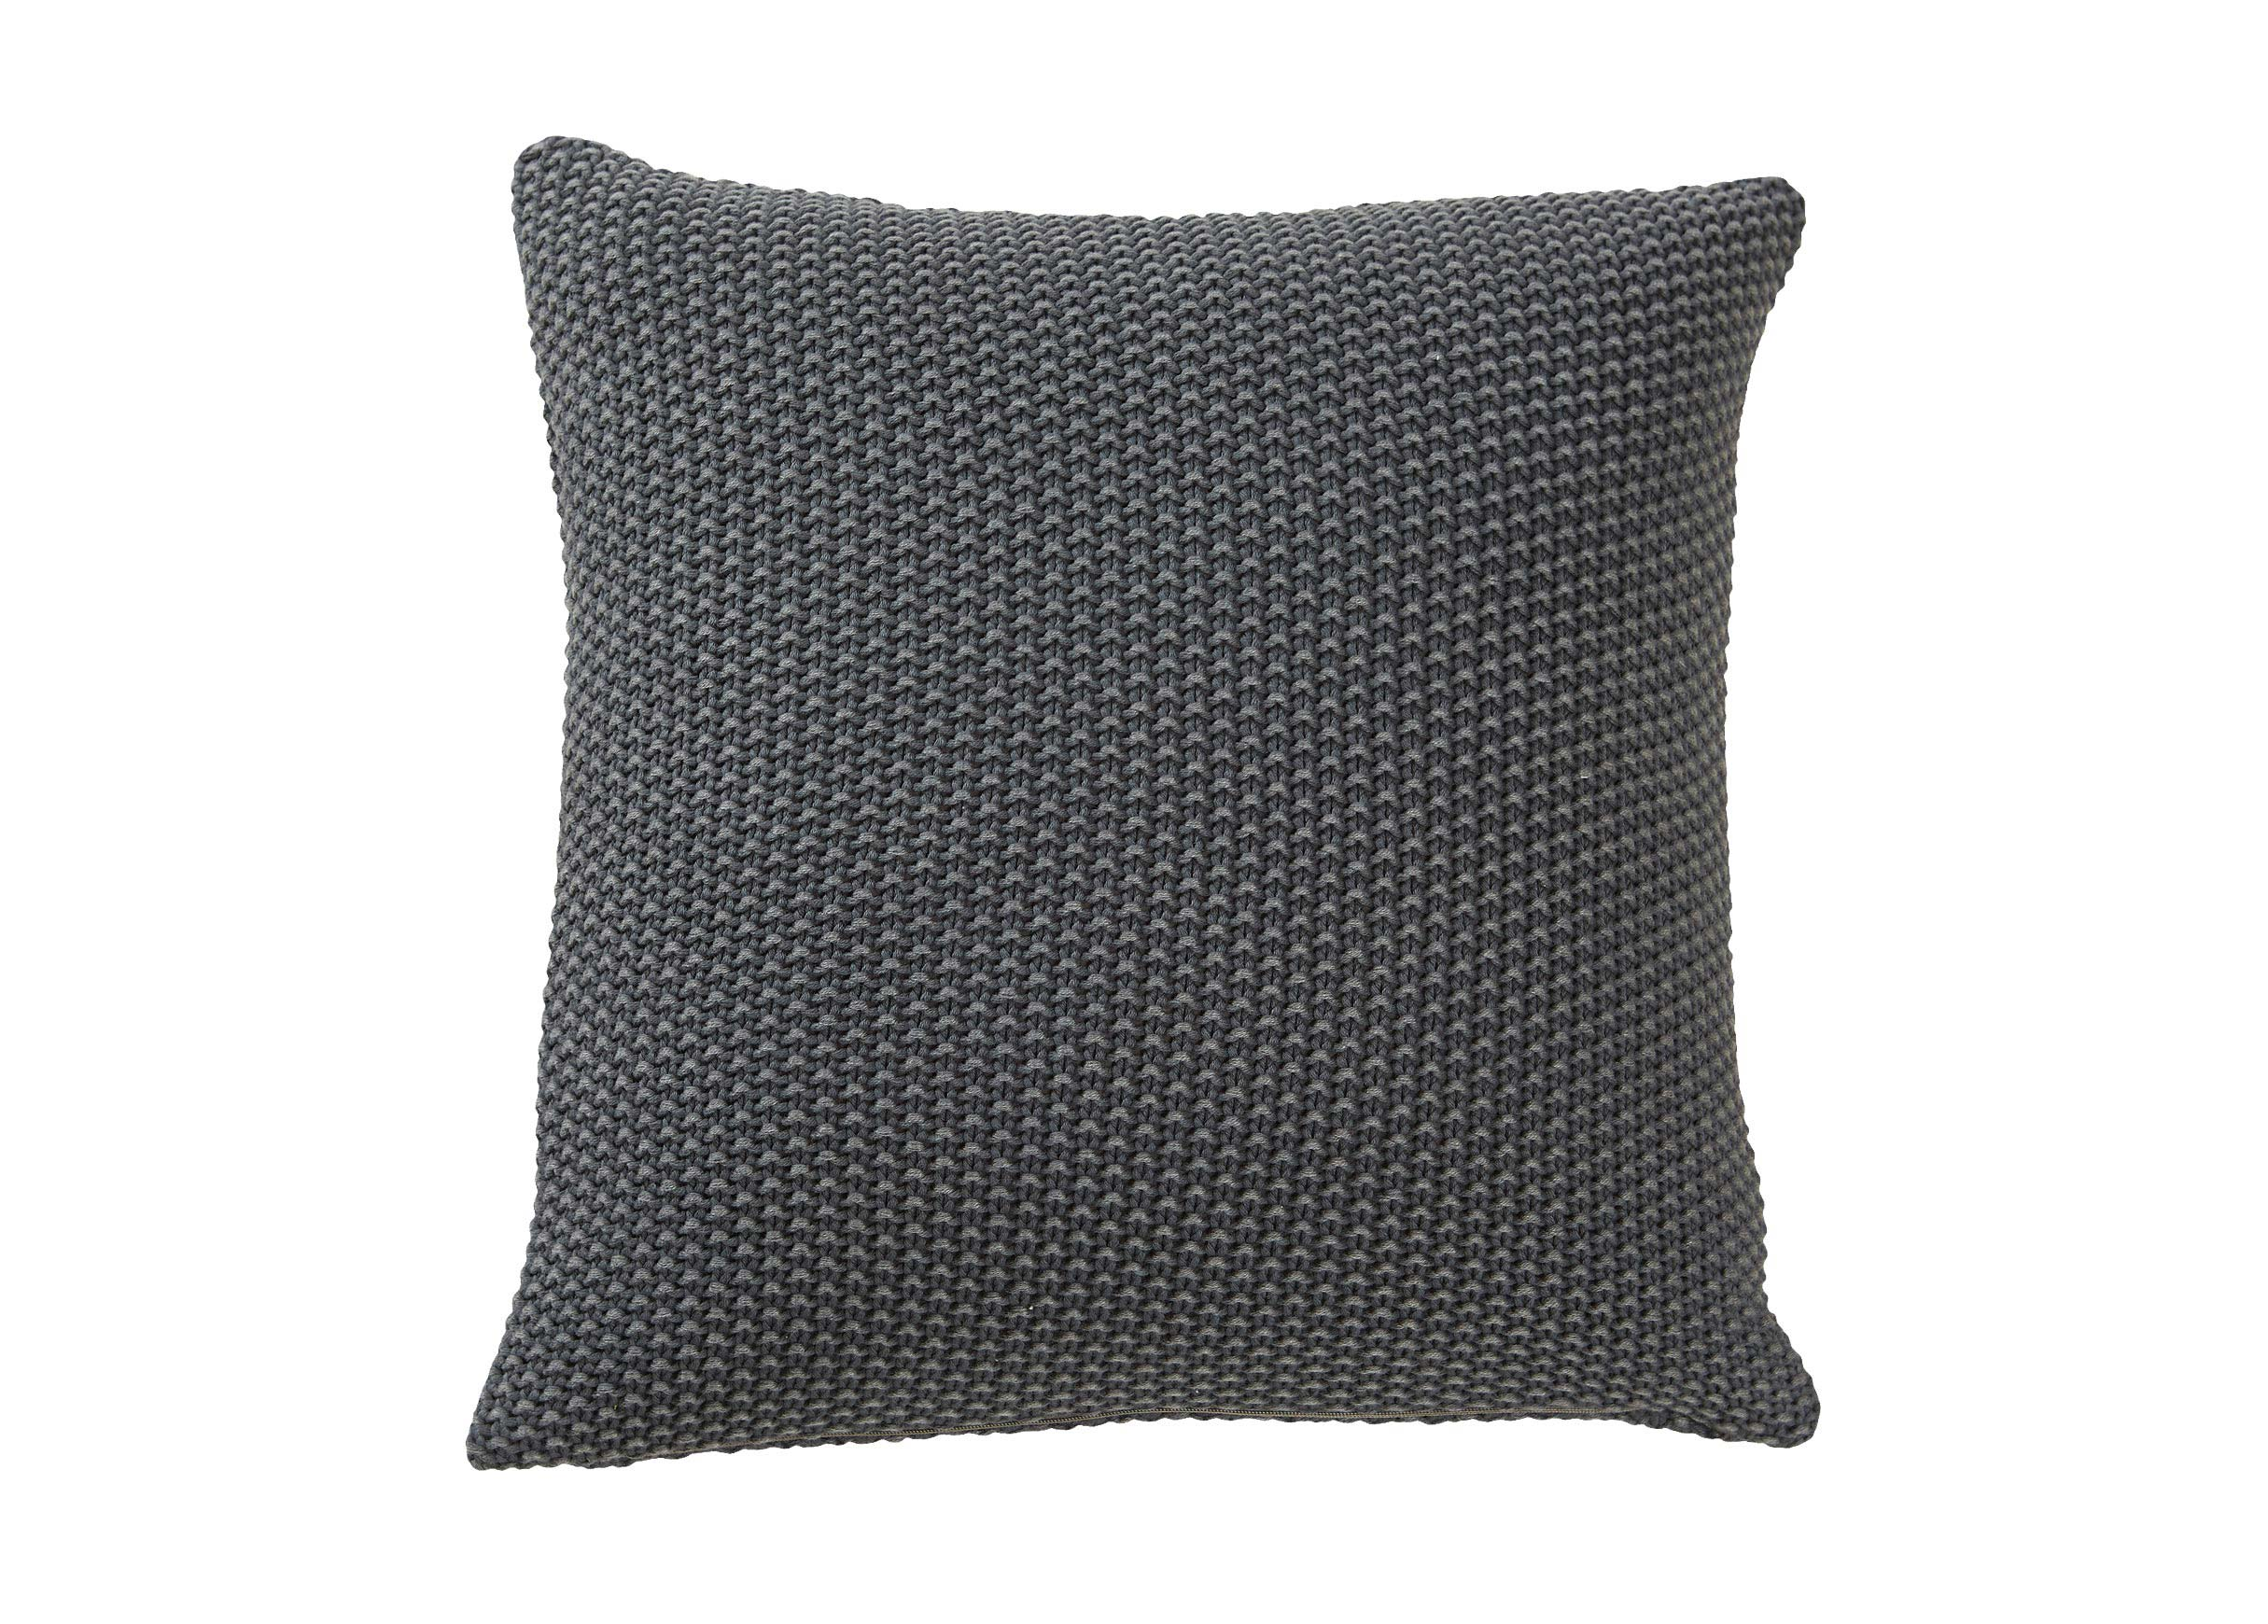 Moss Stitch Throw Pattern Pillows